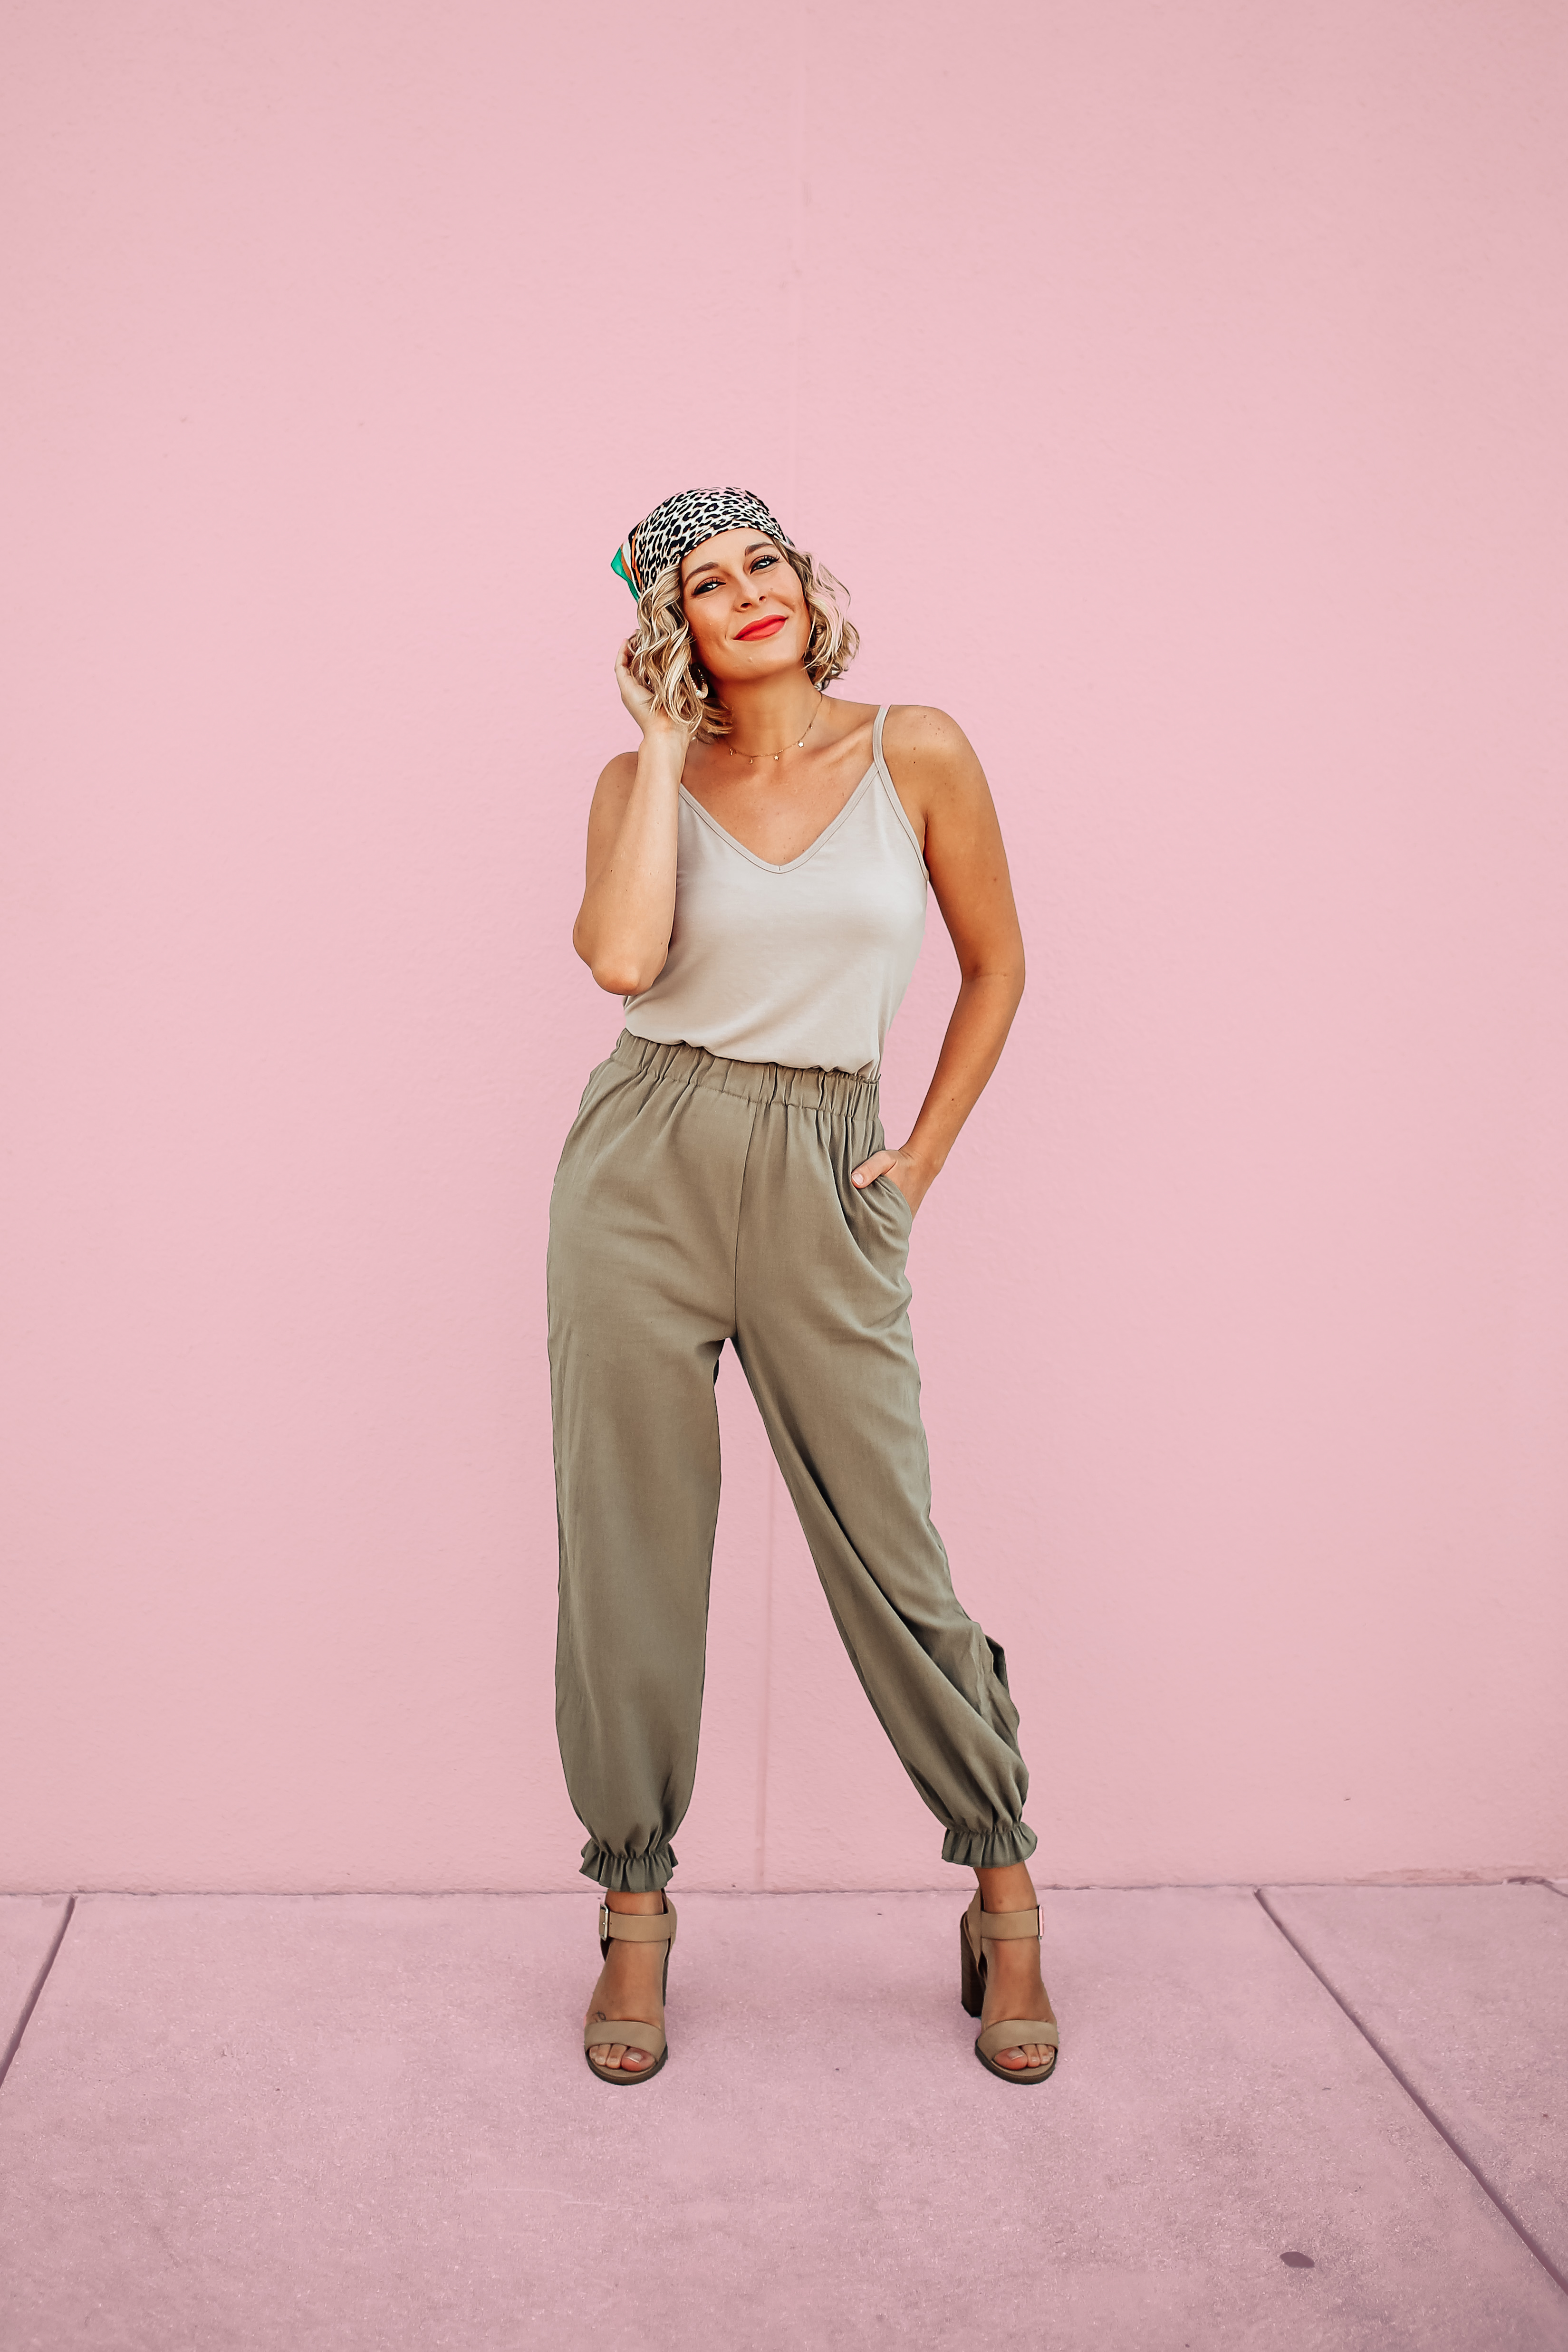 """LIGHTWEIGHT PAPERBAG PANTS. ELASTIC WAIST AND ANKLES. FUNCTIONAL SIDE POCKETS. KEYHOLE DETAIL ON BOTTOM OF BOTH SIDES. 100% COTTON. GABBY IS 5'8"""" A SIZE 10/12 AND 38DD WEARING A LARGE. S 0-4 M 4-8 L 10-12"""